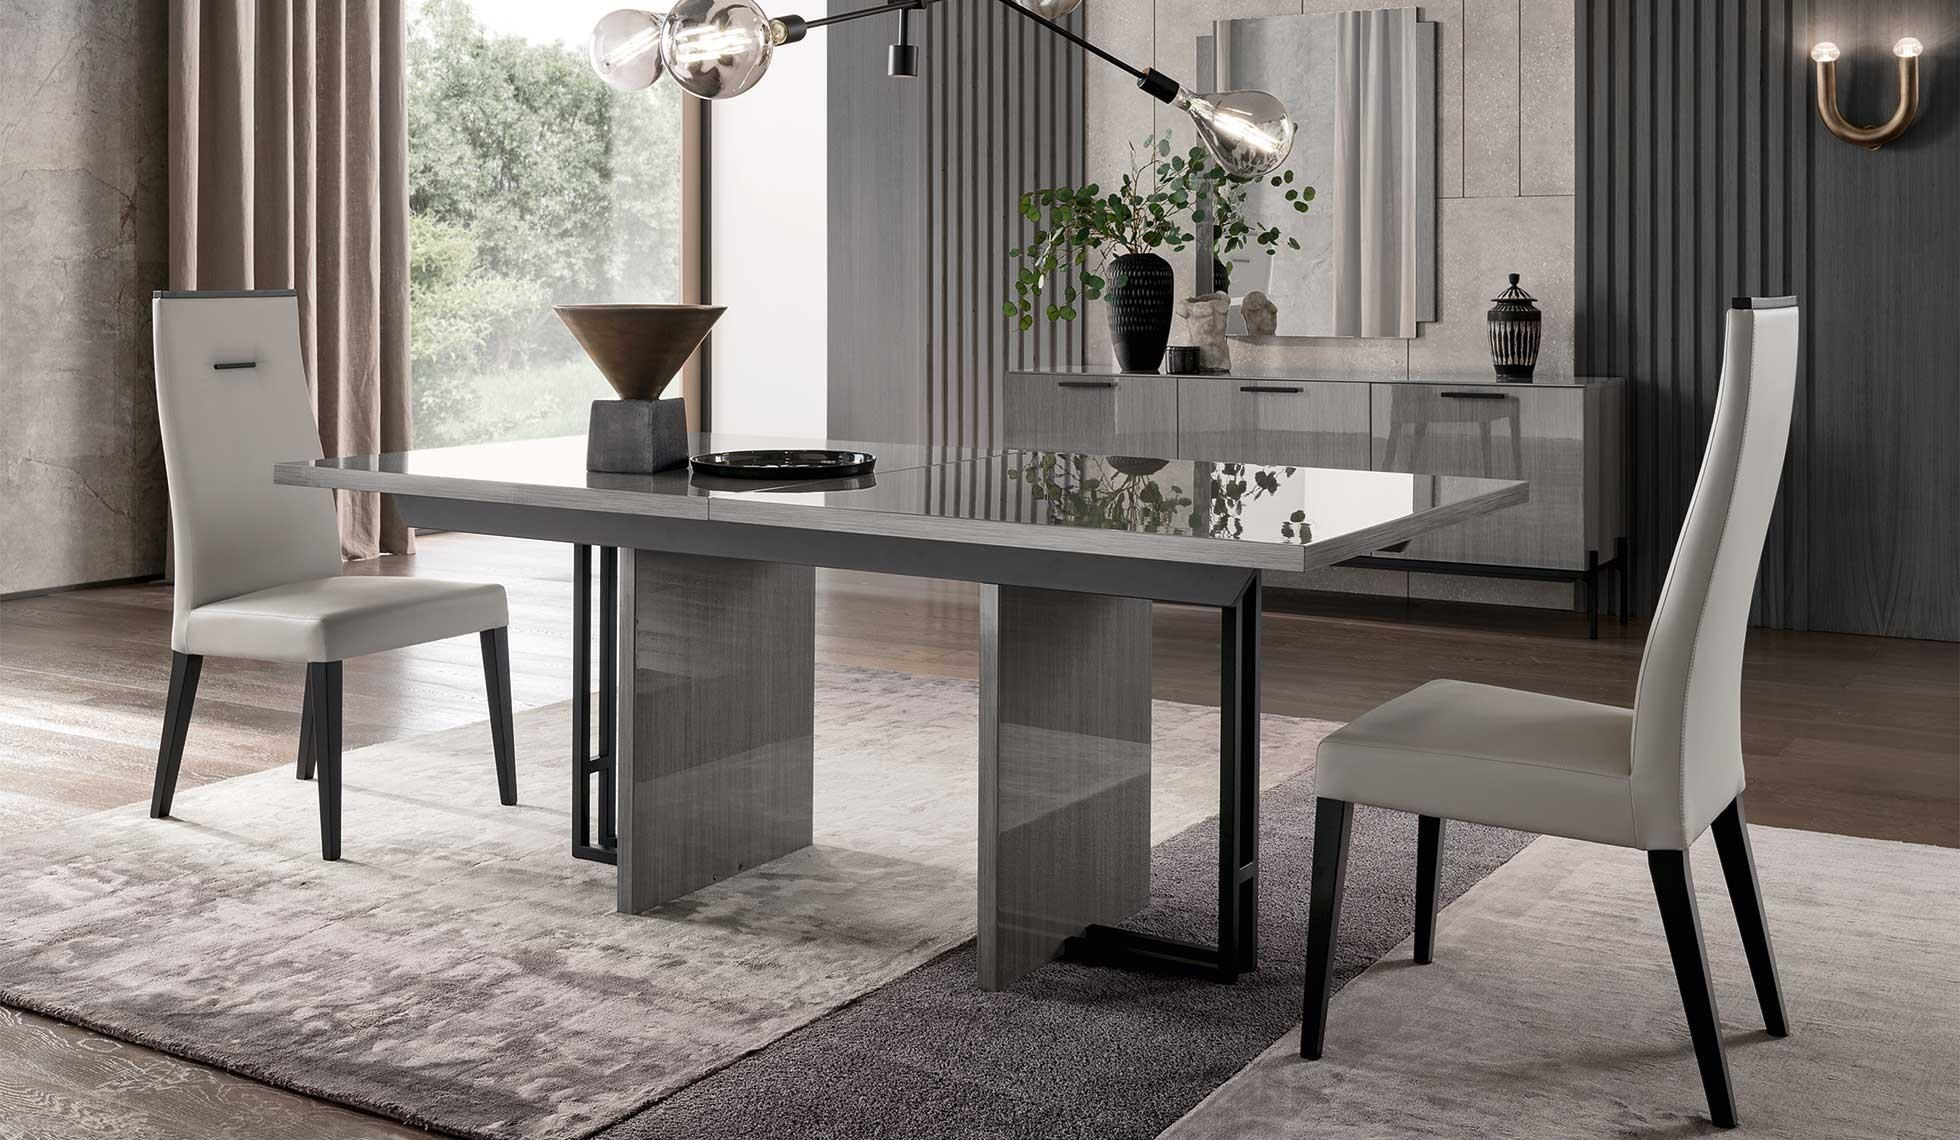 Novecento Dining Table by Alf Italia at Red Knot